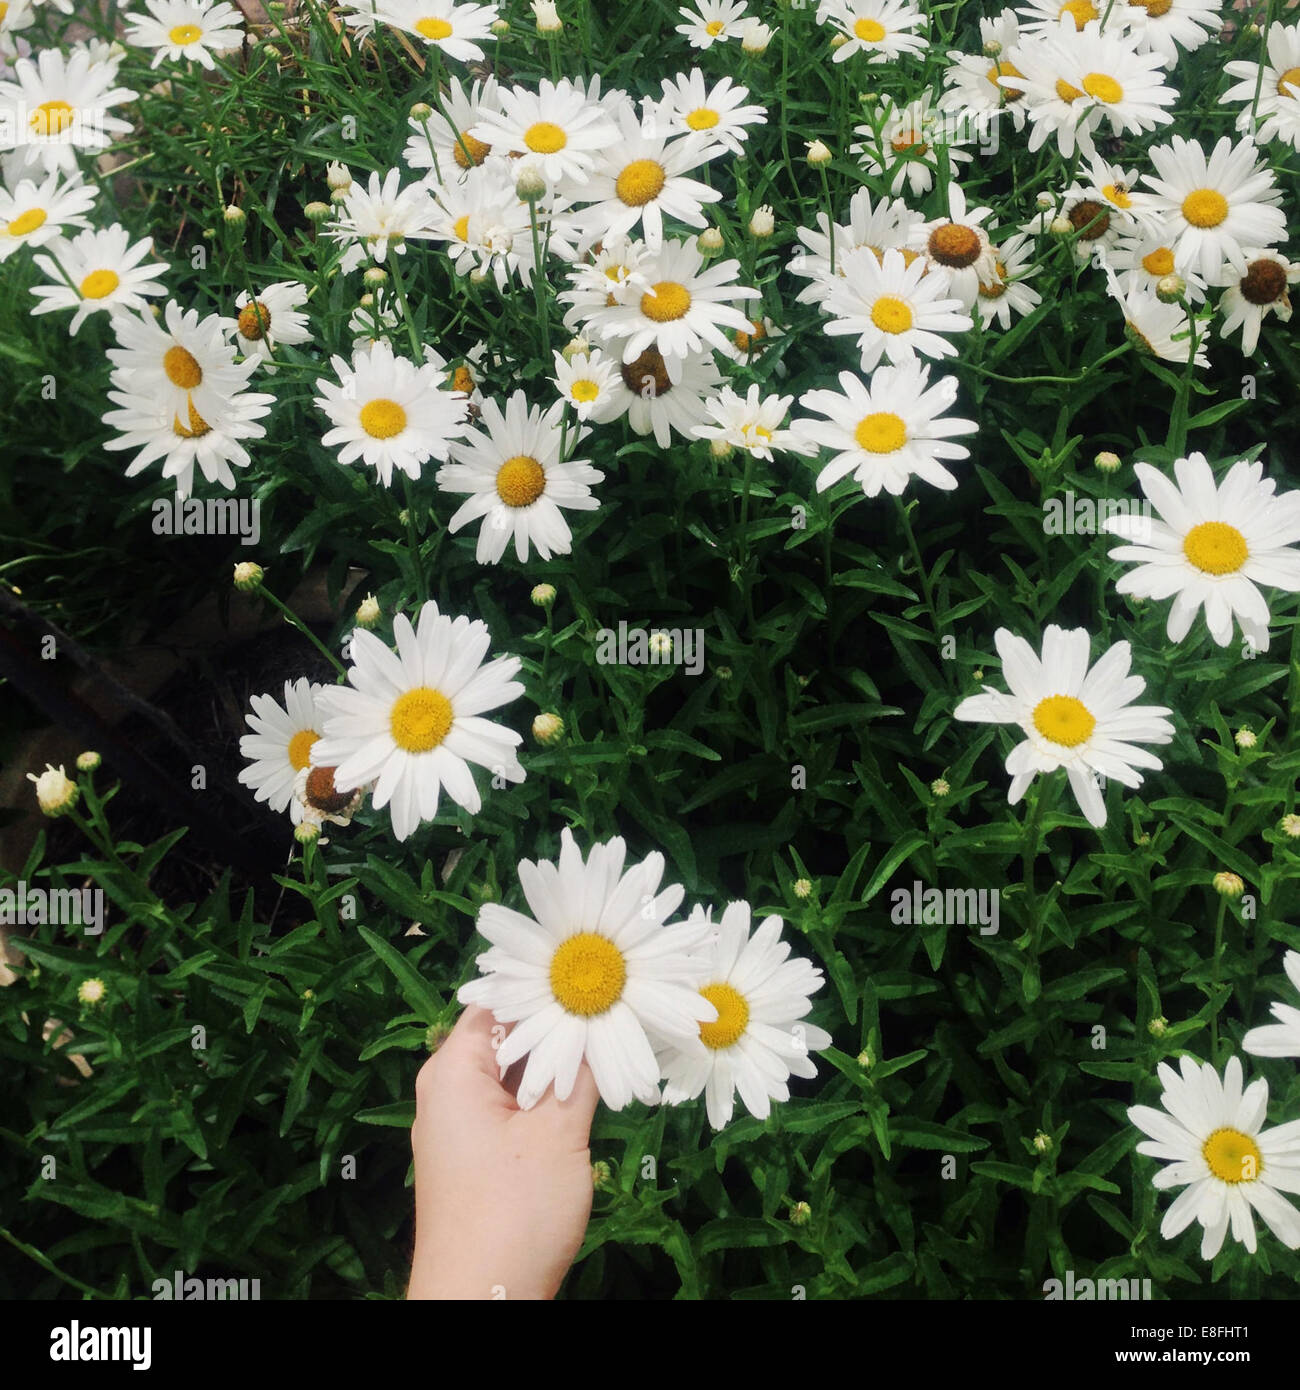 Bunch of daisies with human hand - Stock Image